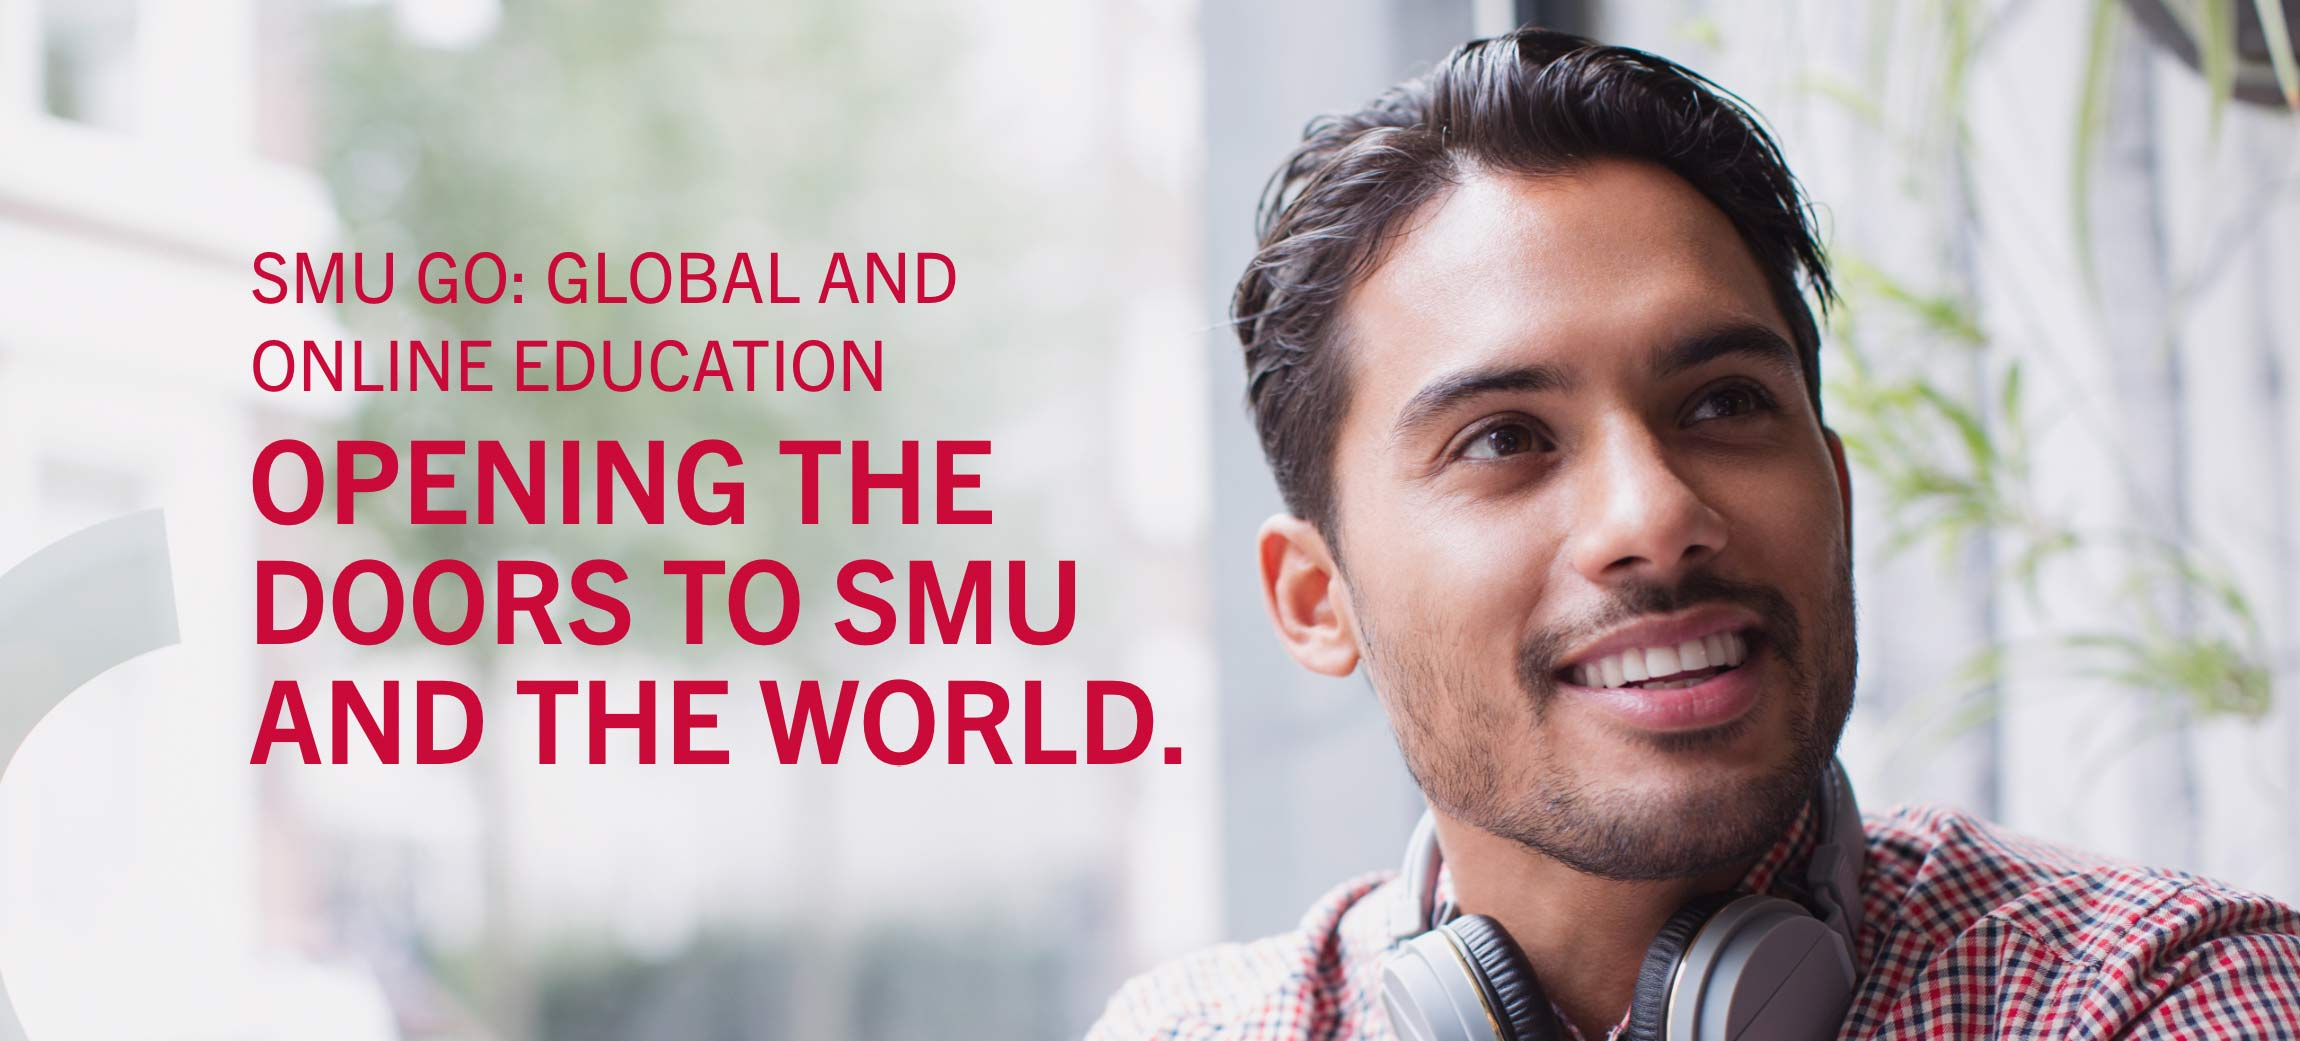 SMU GO: Global and Online Education - Opening the Doors to SMU and the World